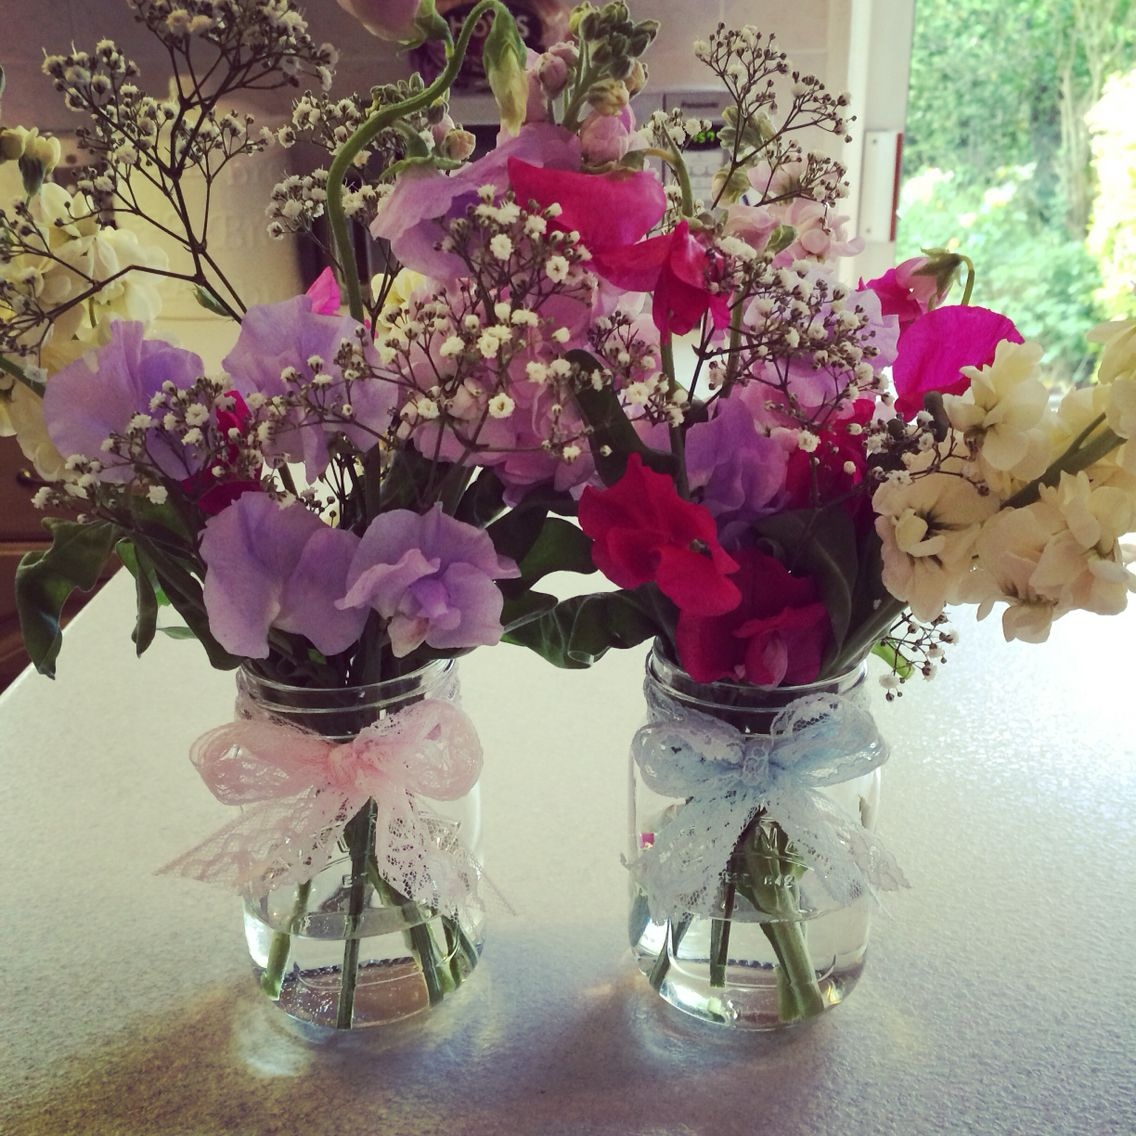 Flowers look so pretty in Jam Jars decorated with lace ribbon 🌷